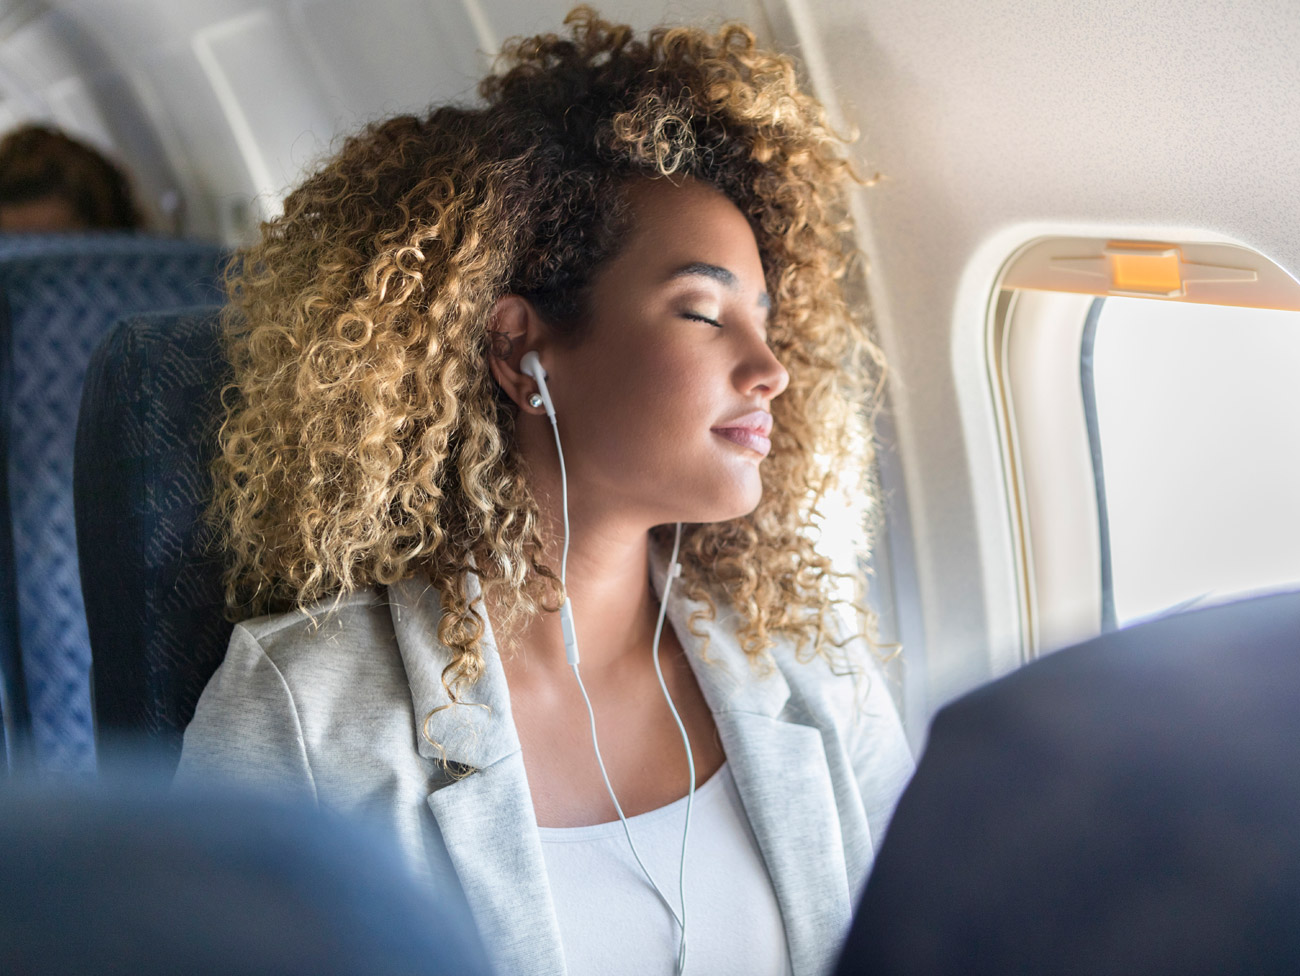 Relaxed young woman listening to her earbuds while on an airplane.